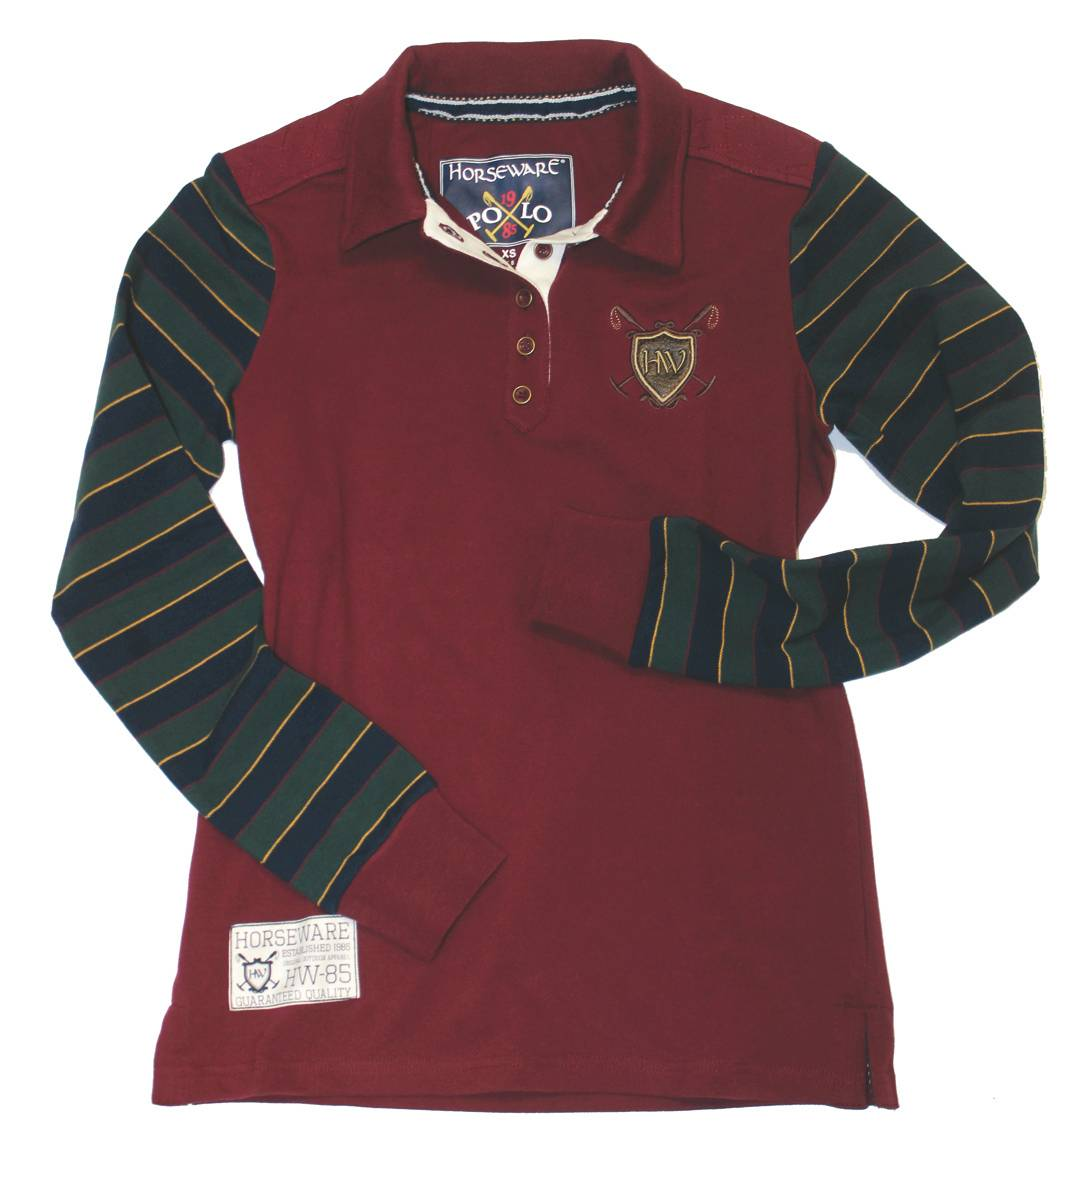 Horseware Polo Ladies' Lucy Rugby Shirt